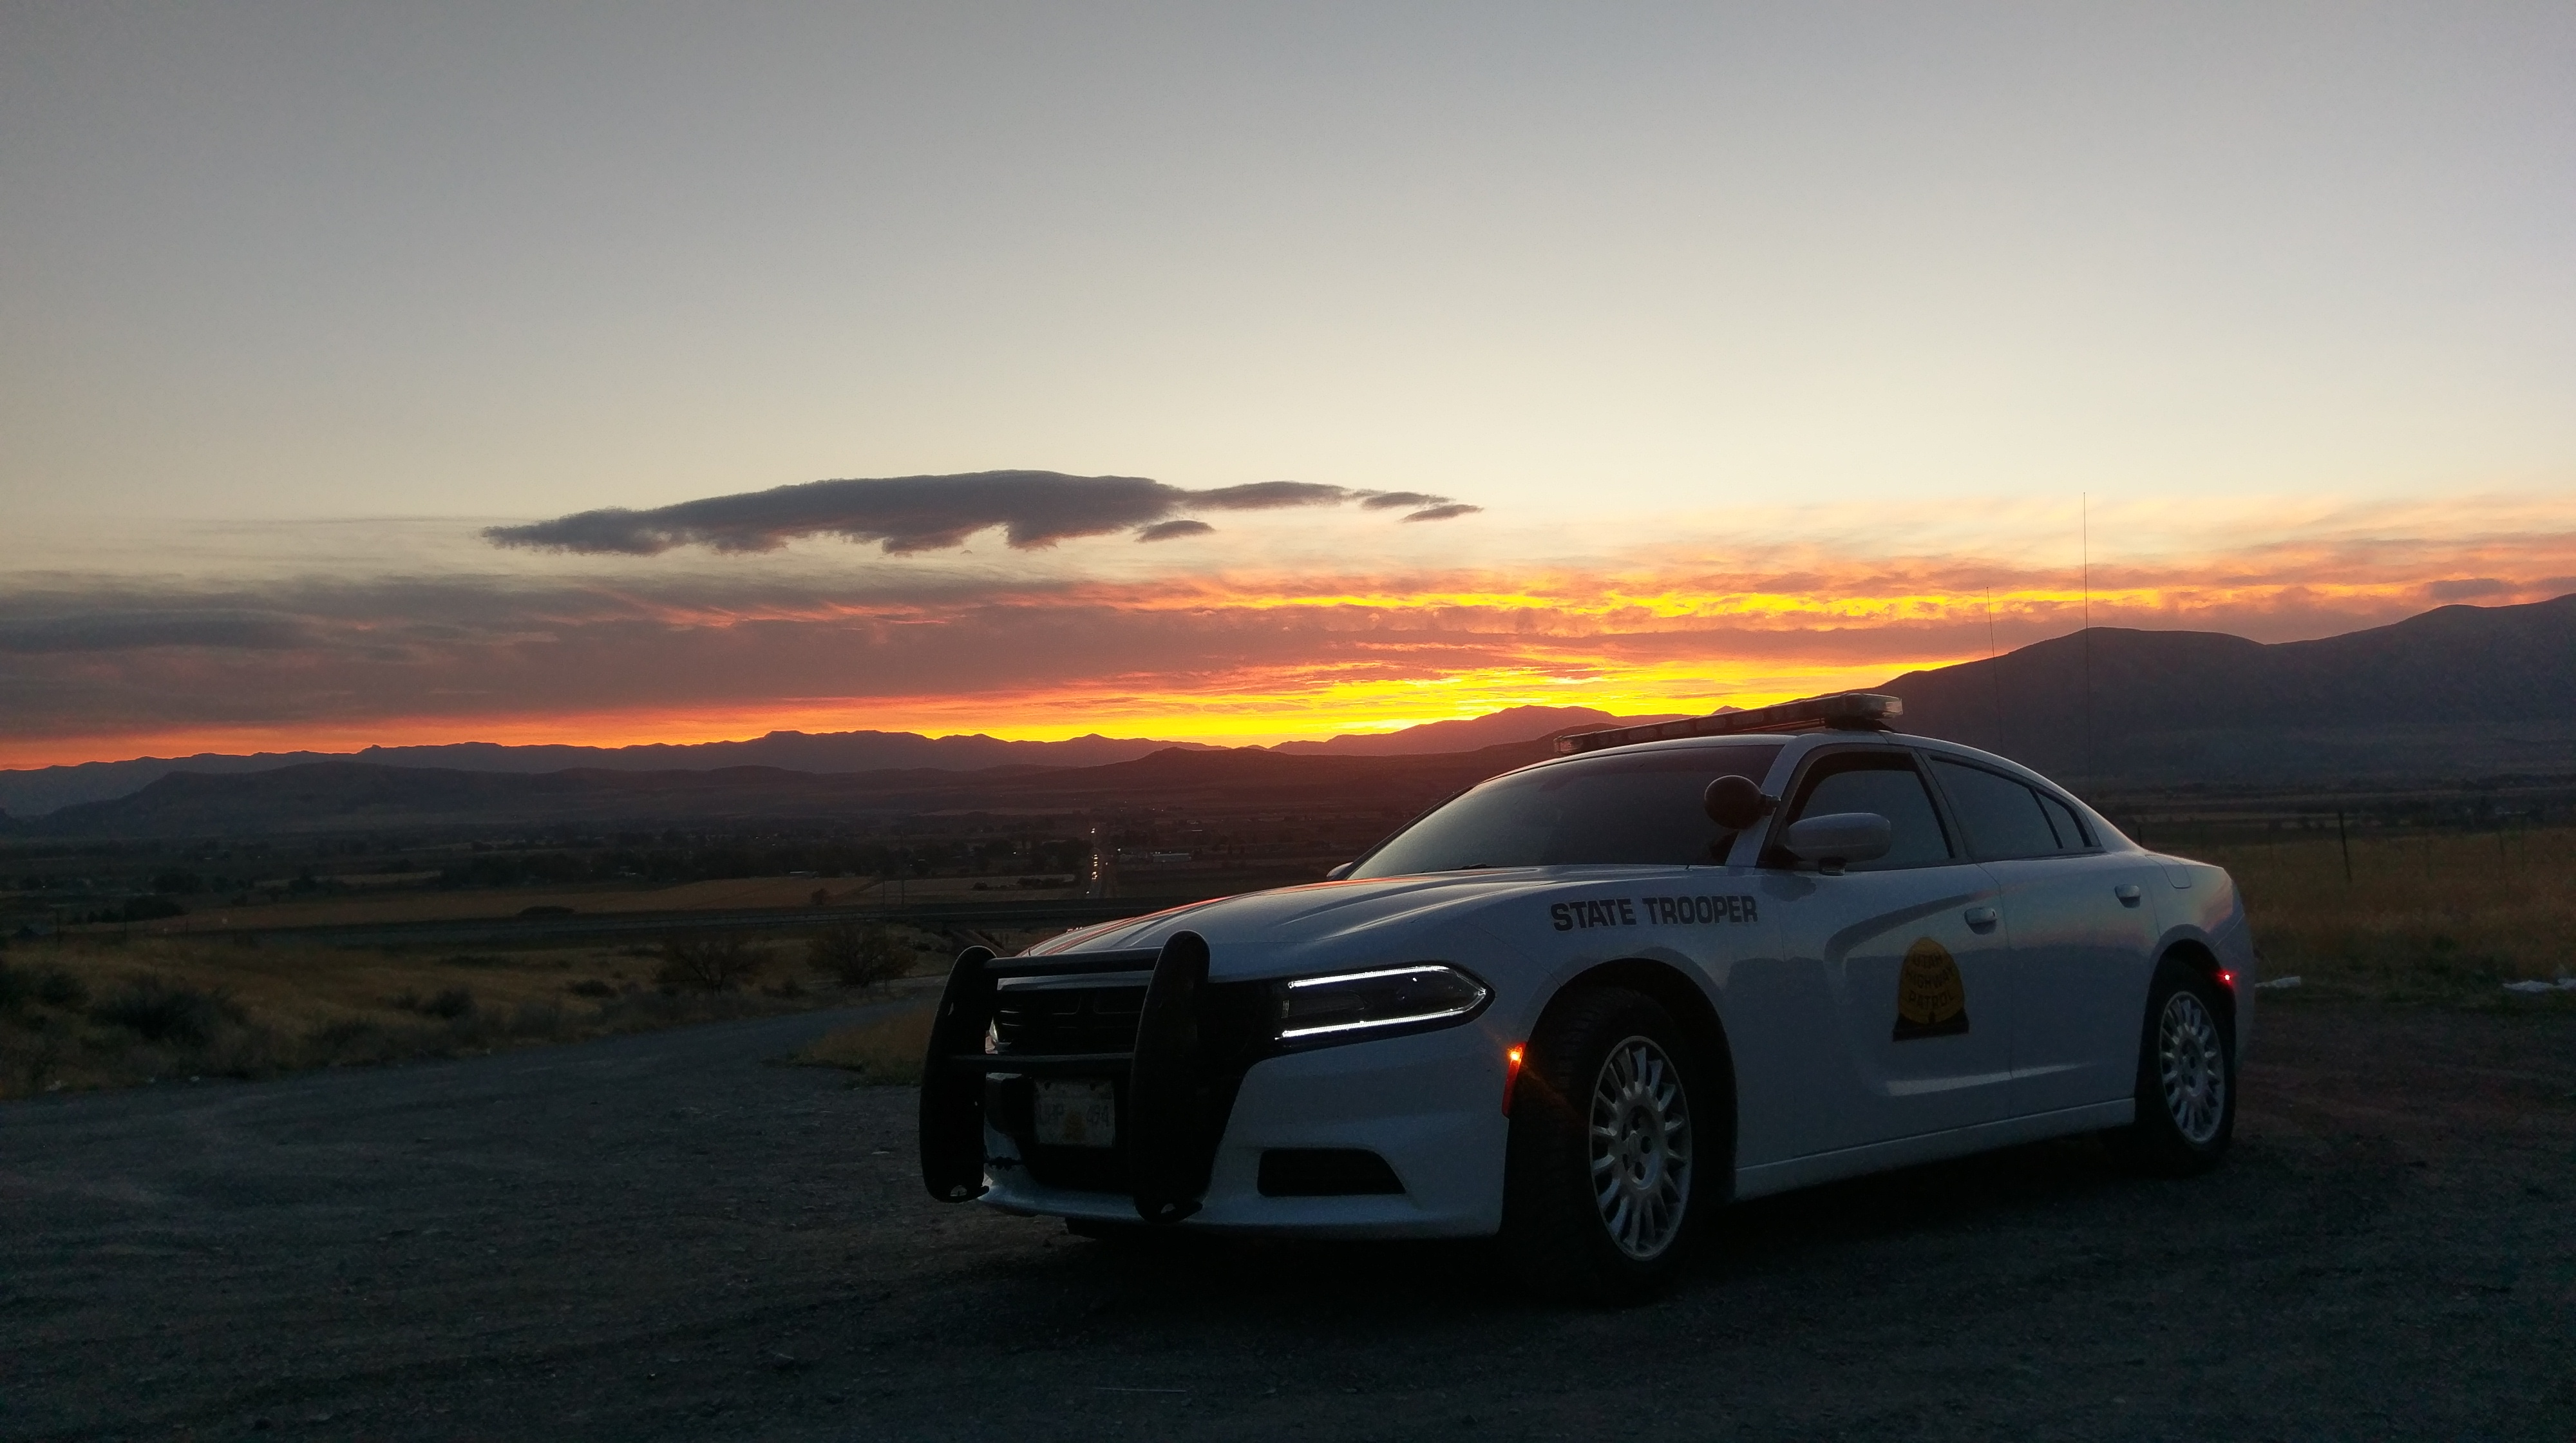 A UHP Dodge Charger with sunset and mountains in the background.